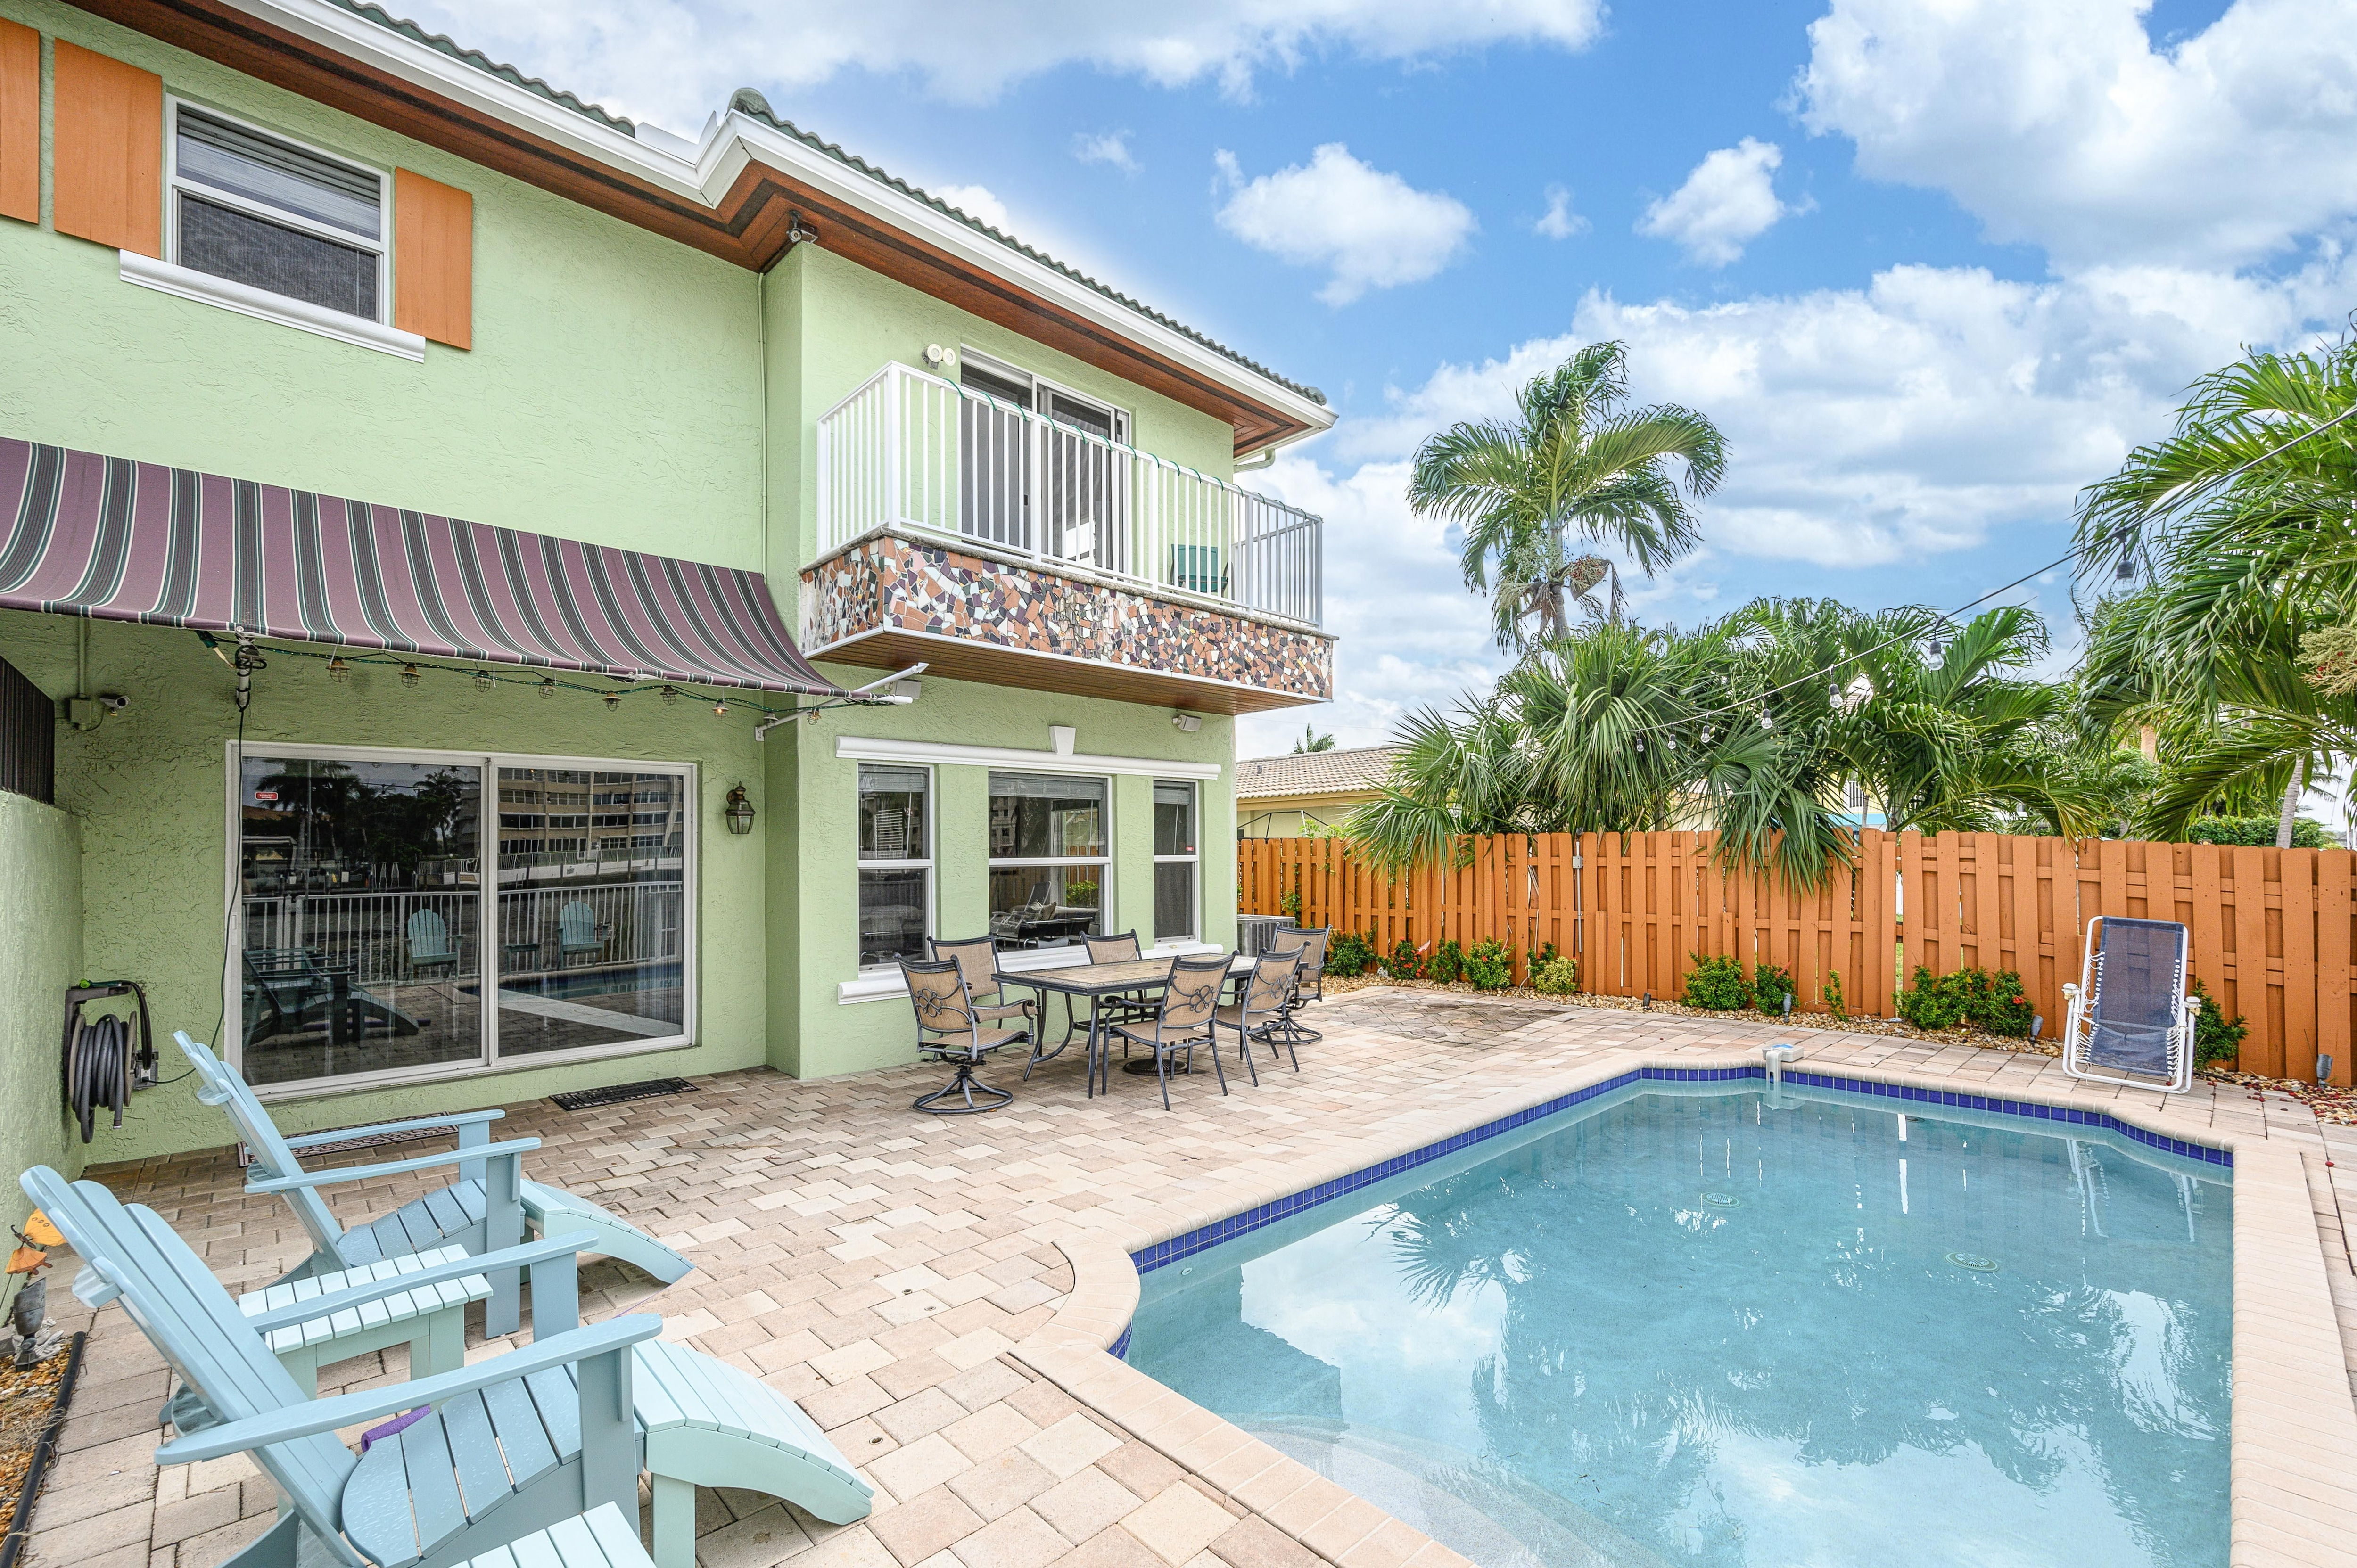 Welcome to Fort Lauderdale! This rental is professionally managed by TurnKey Vacation Rentals.